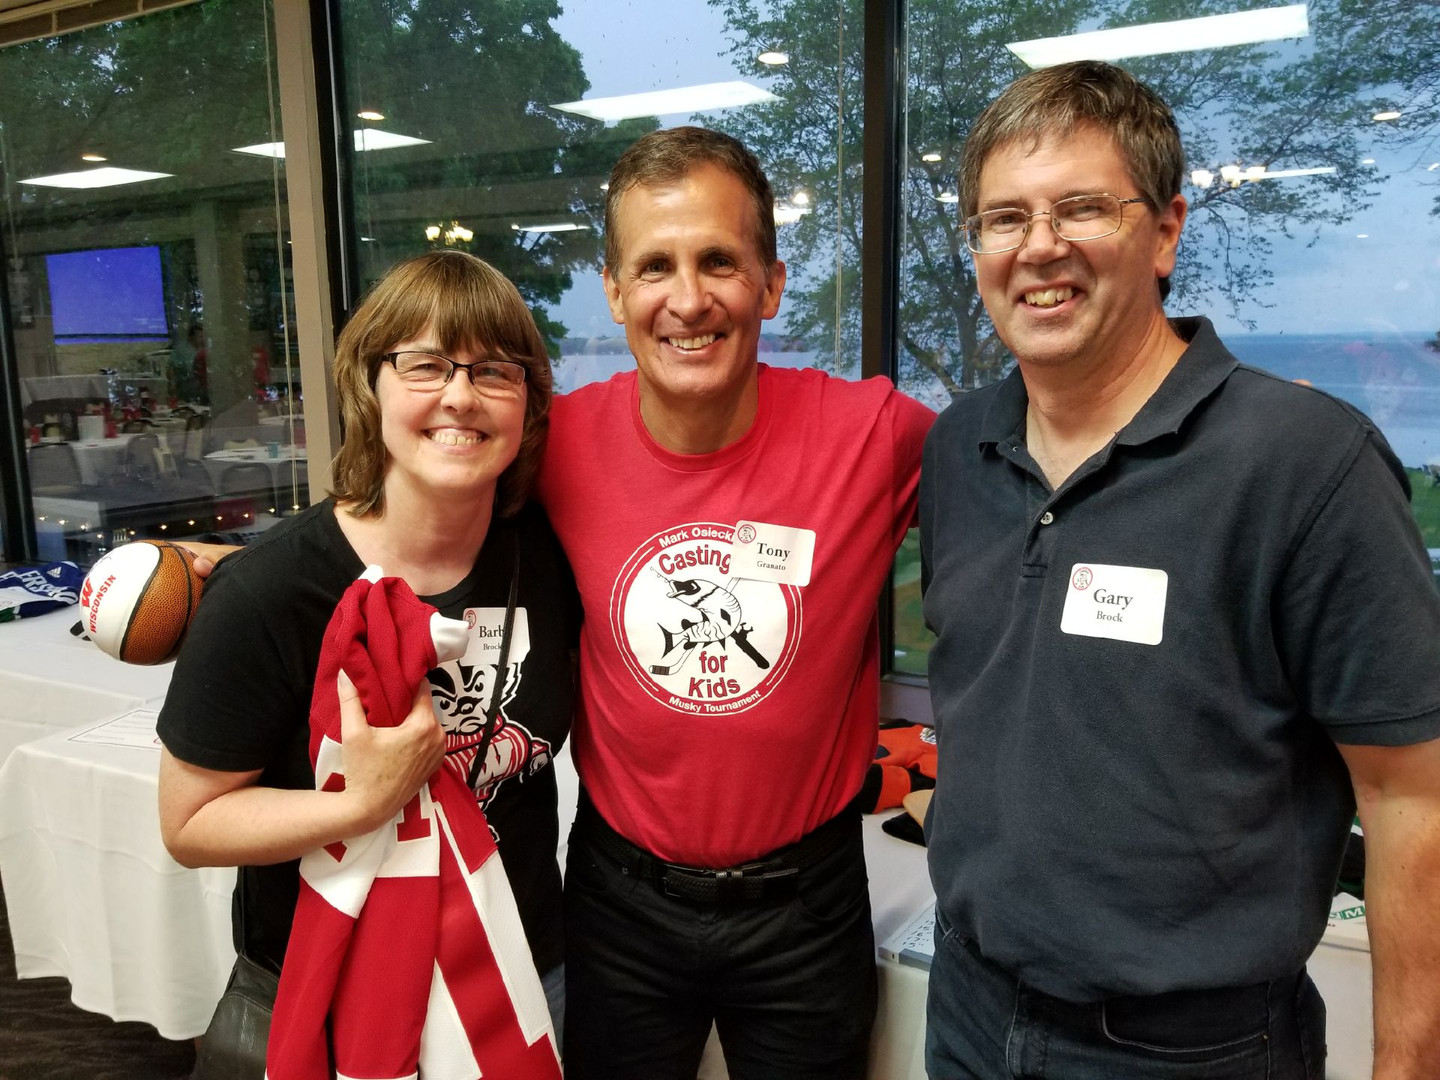 Barb Brock, Coach Tony Granato and Gary Brock are all smiles at this years Mark Osiecki Casting for Kids Muskie Tournament, Dinner and Banquet. 6/01/2019